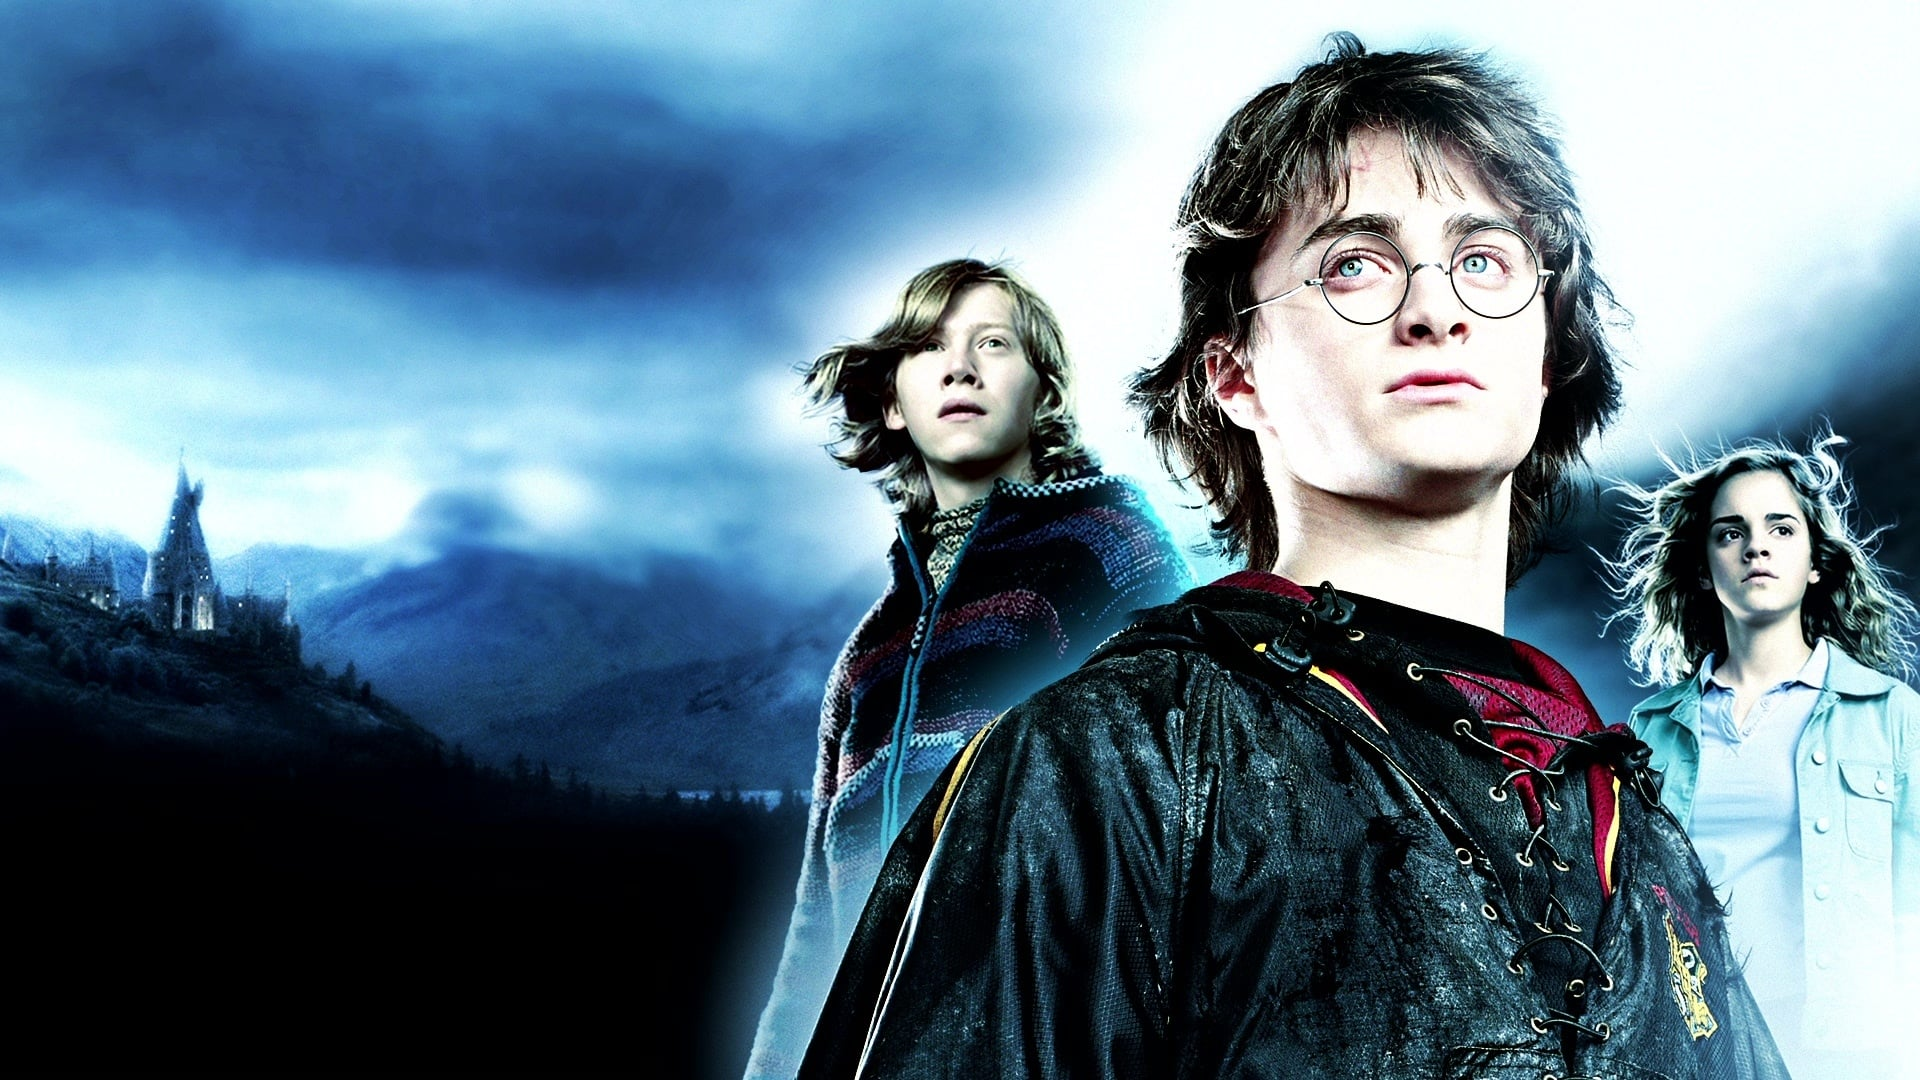 Harry potter et la coupe de feu 2005 le film - Harry potter la coupe de feu streaming vf ...